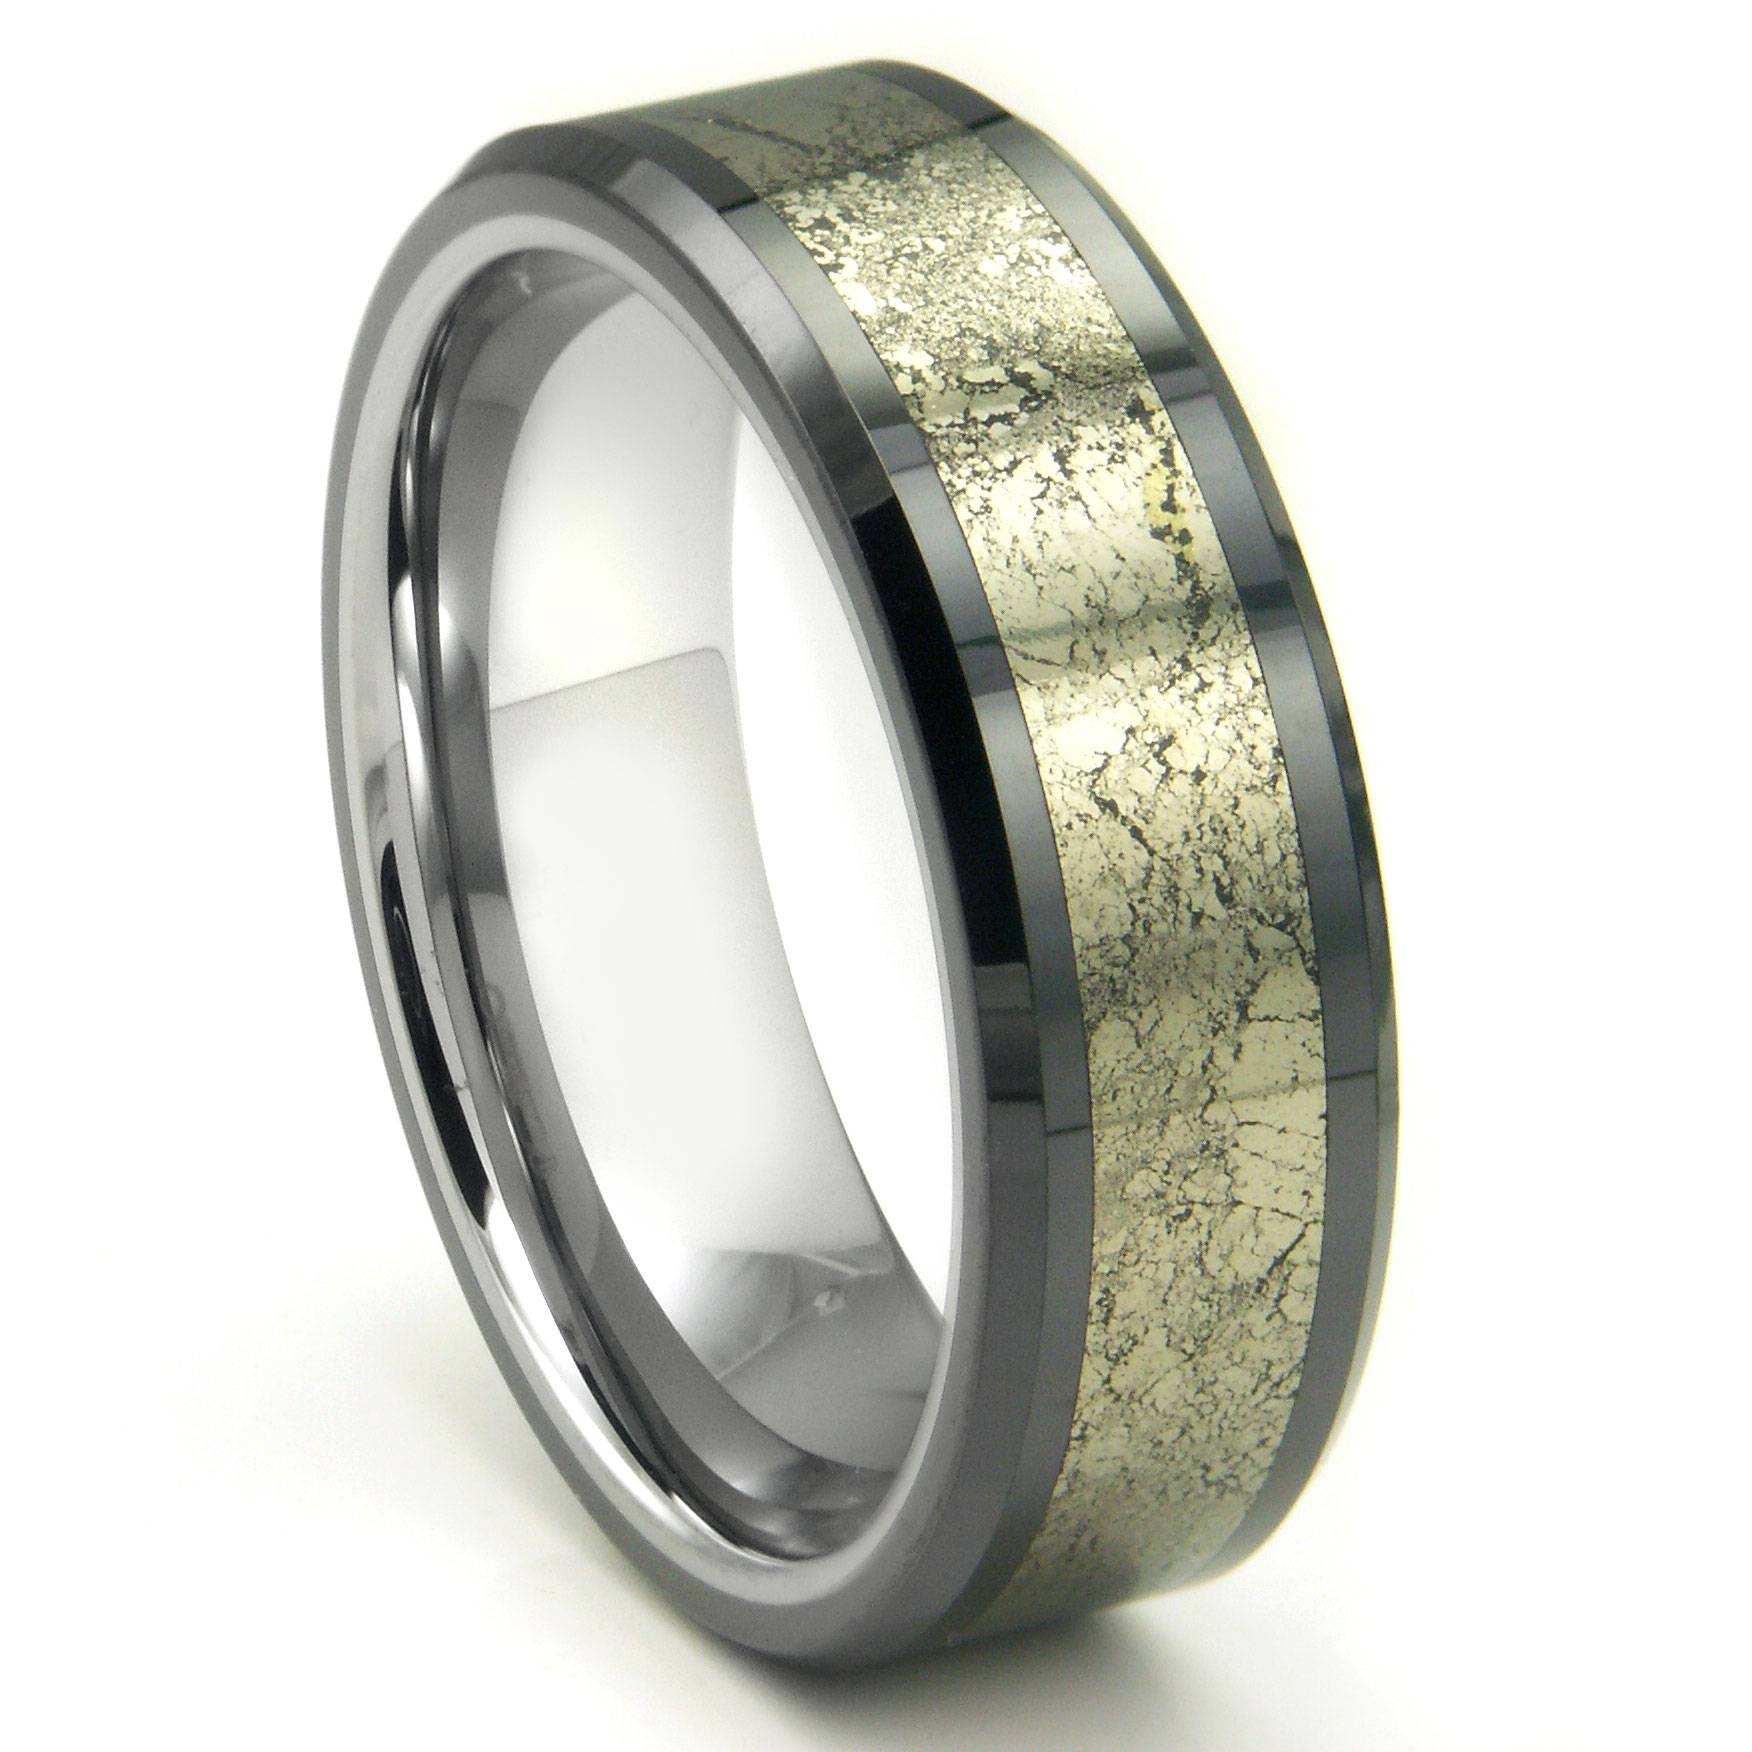 Wedding Rings : Mens Tungsten Wedding Bands Size 14 Striking Regarding Size 14 Men's Wedding Bands (View 10 of 15)